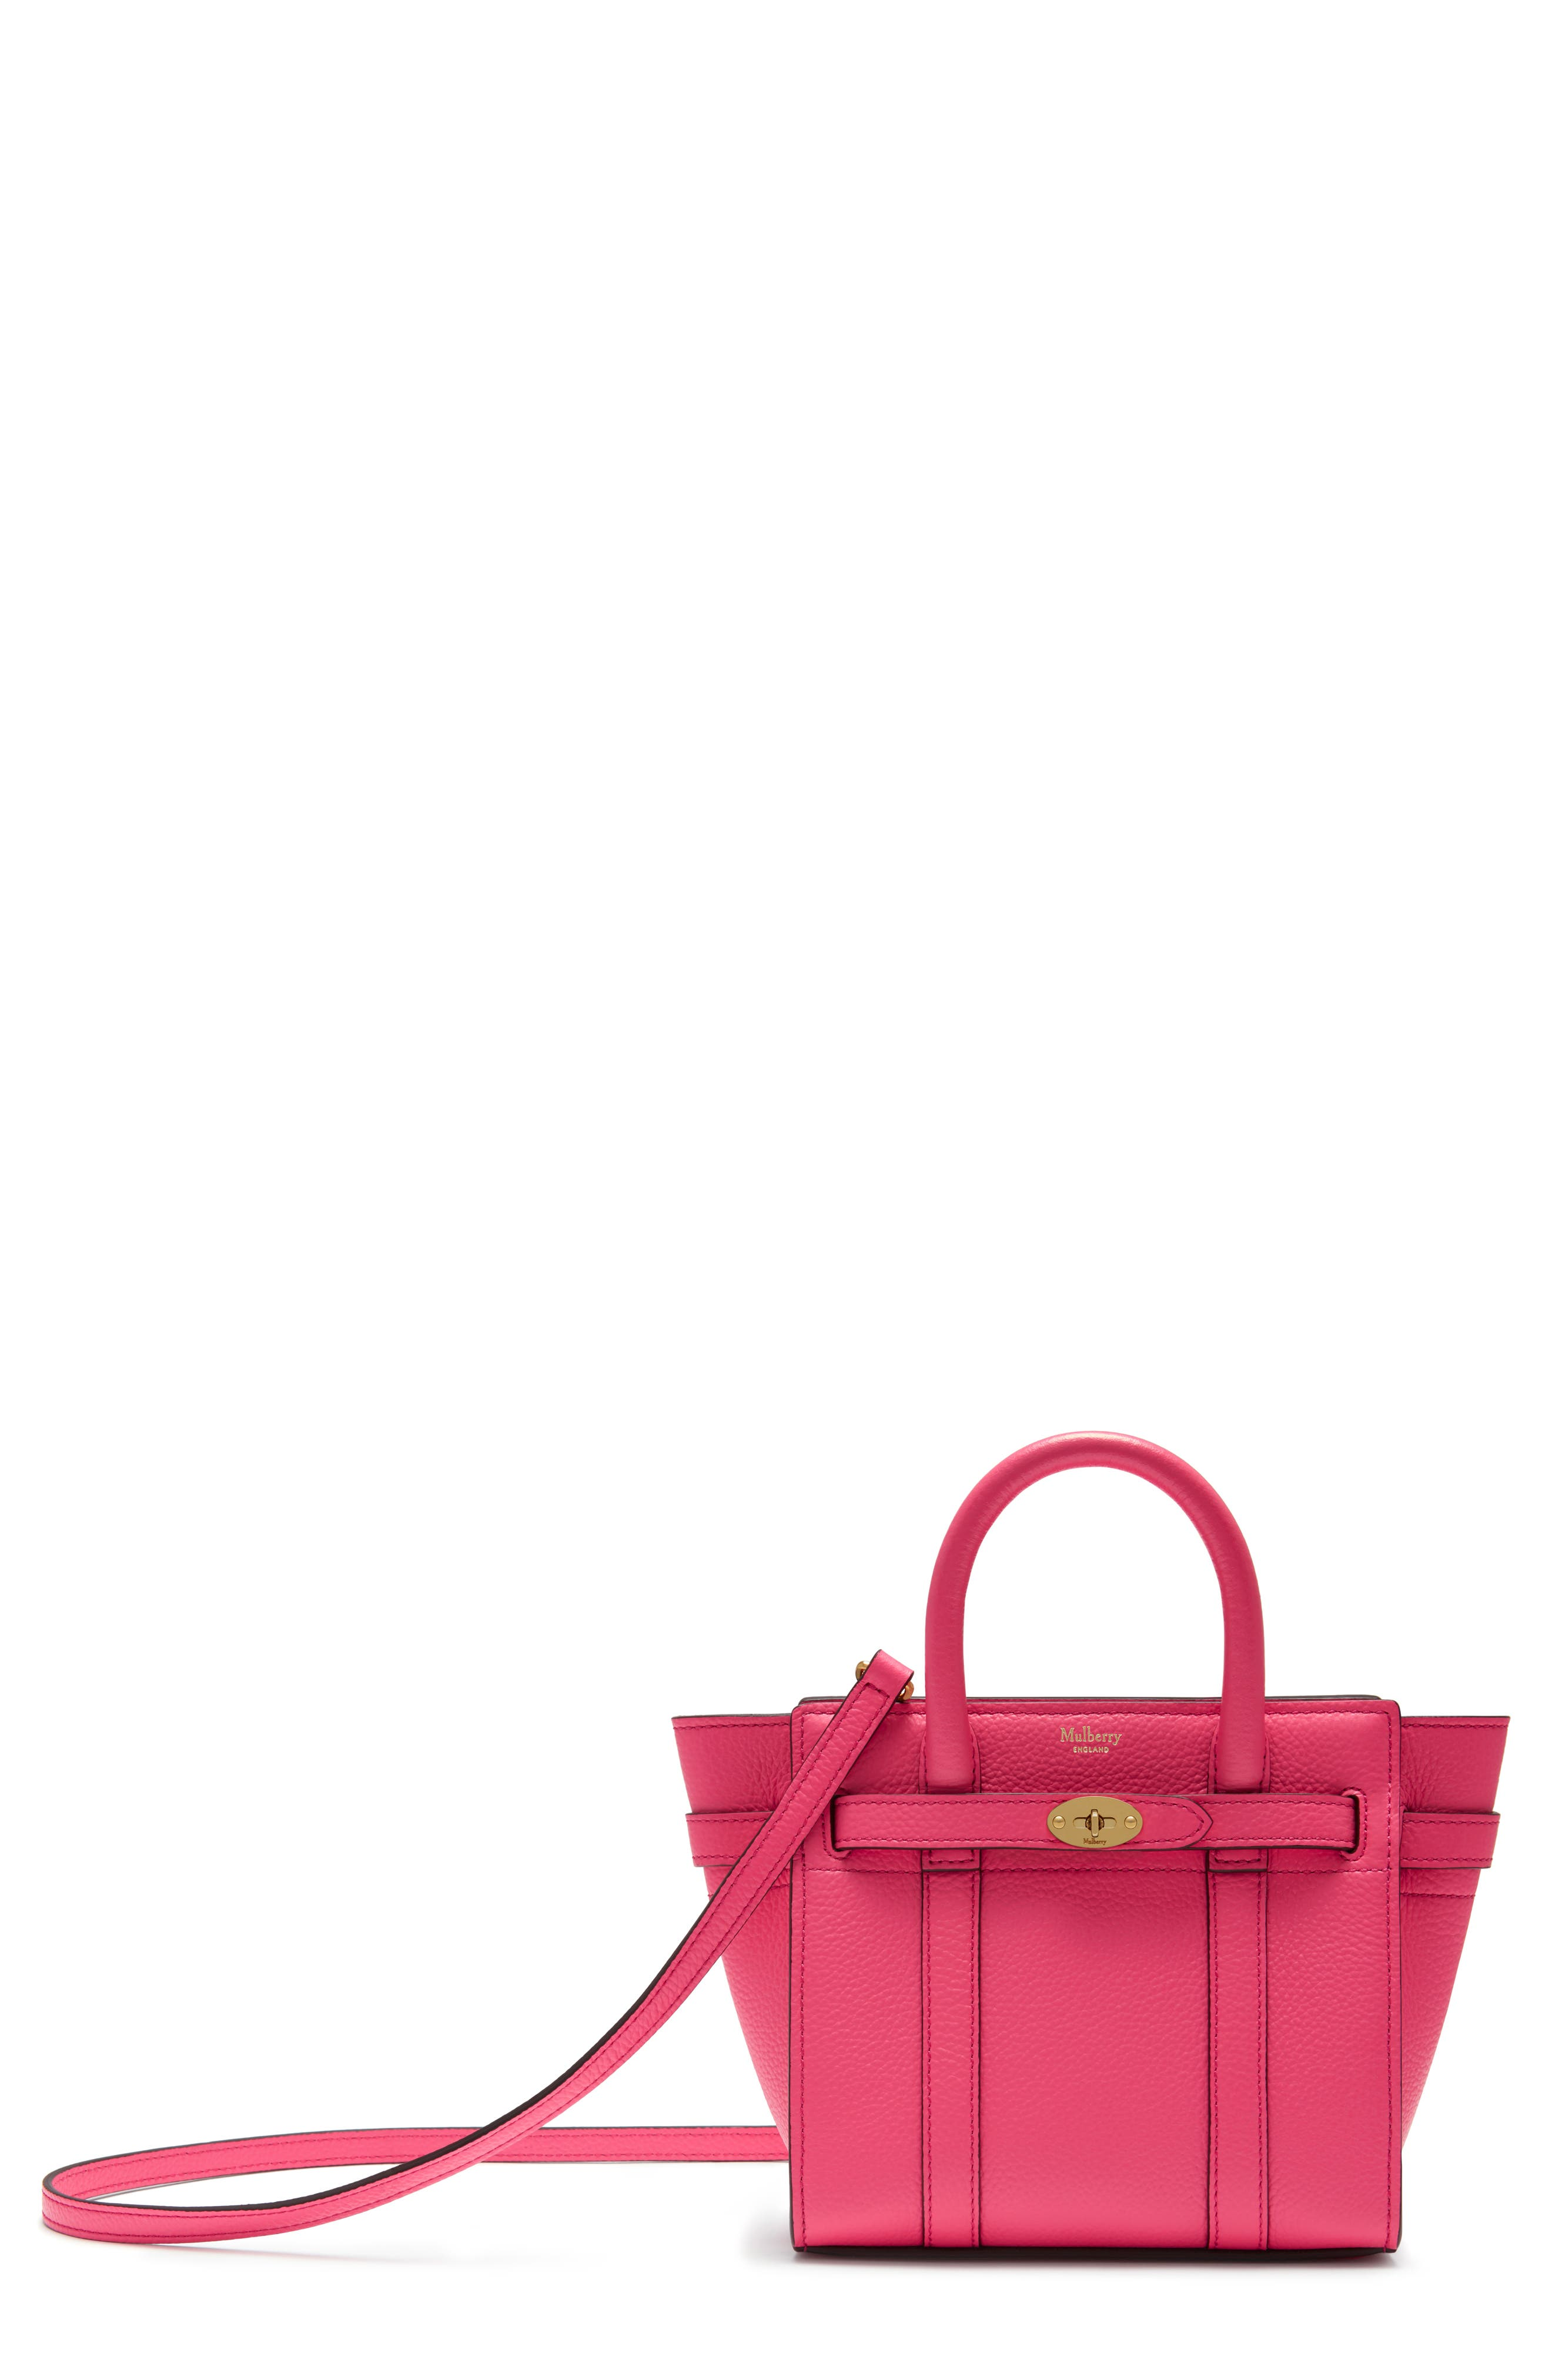 Micro Bayswater Leather Satchel - Pink, Fluro Pink